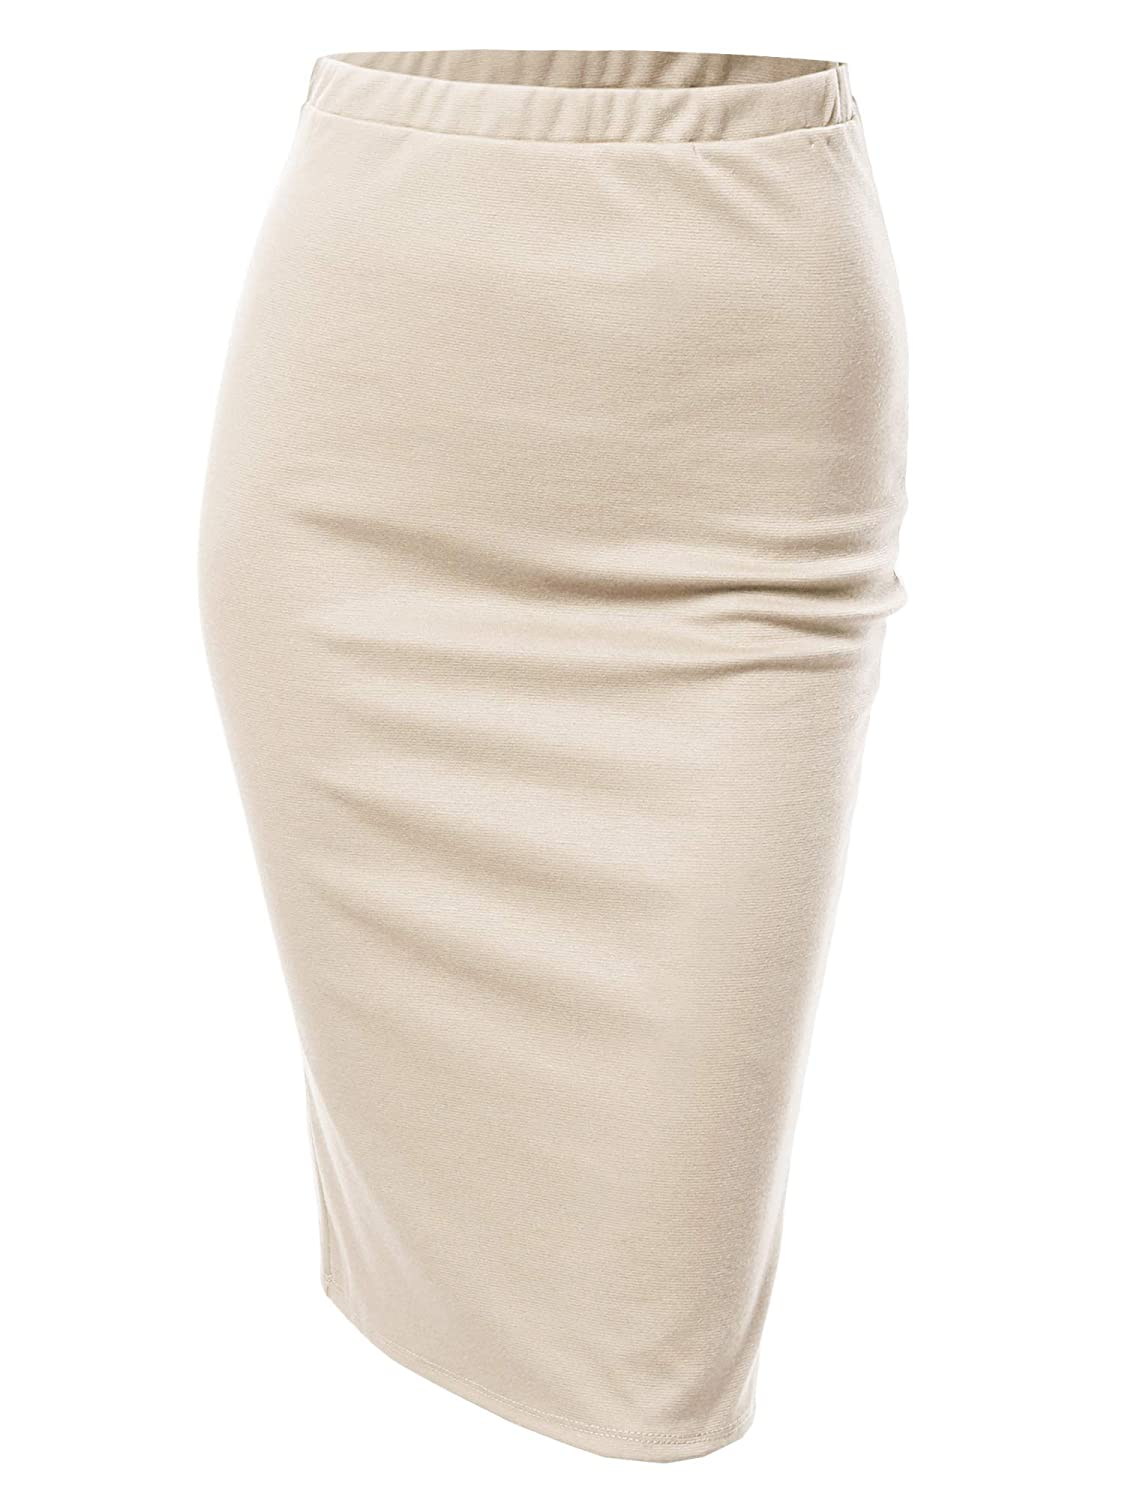 Aawskm0005 Beige Awesome21 Women's Fitted Stretch Solid Print High Waist Midi Pencil Skirt  Made in USA